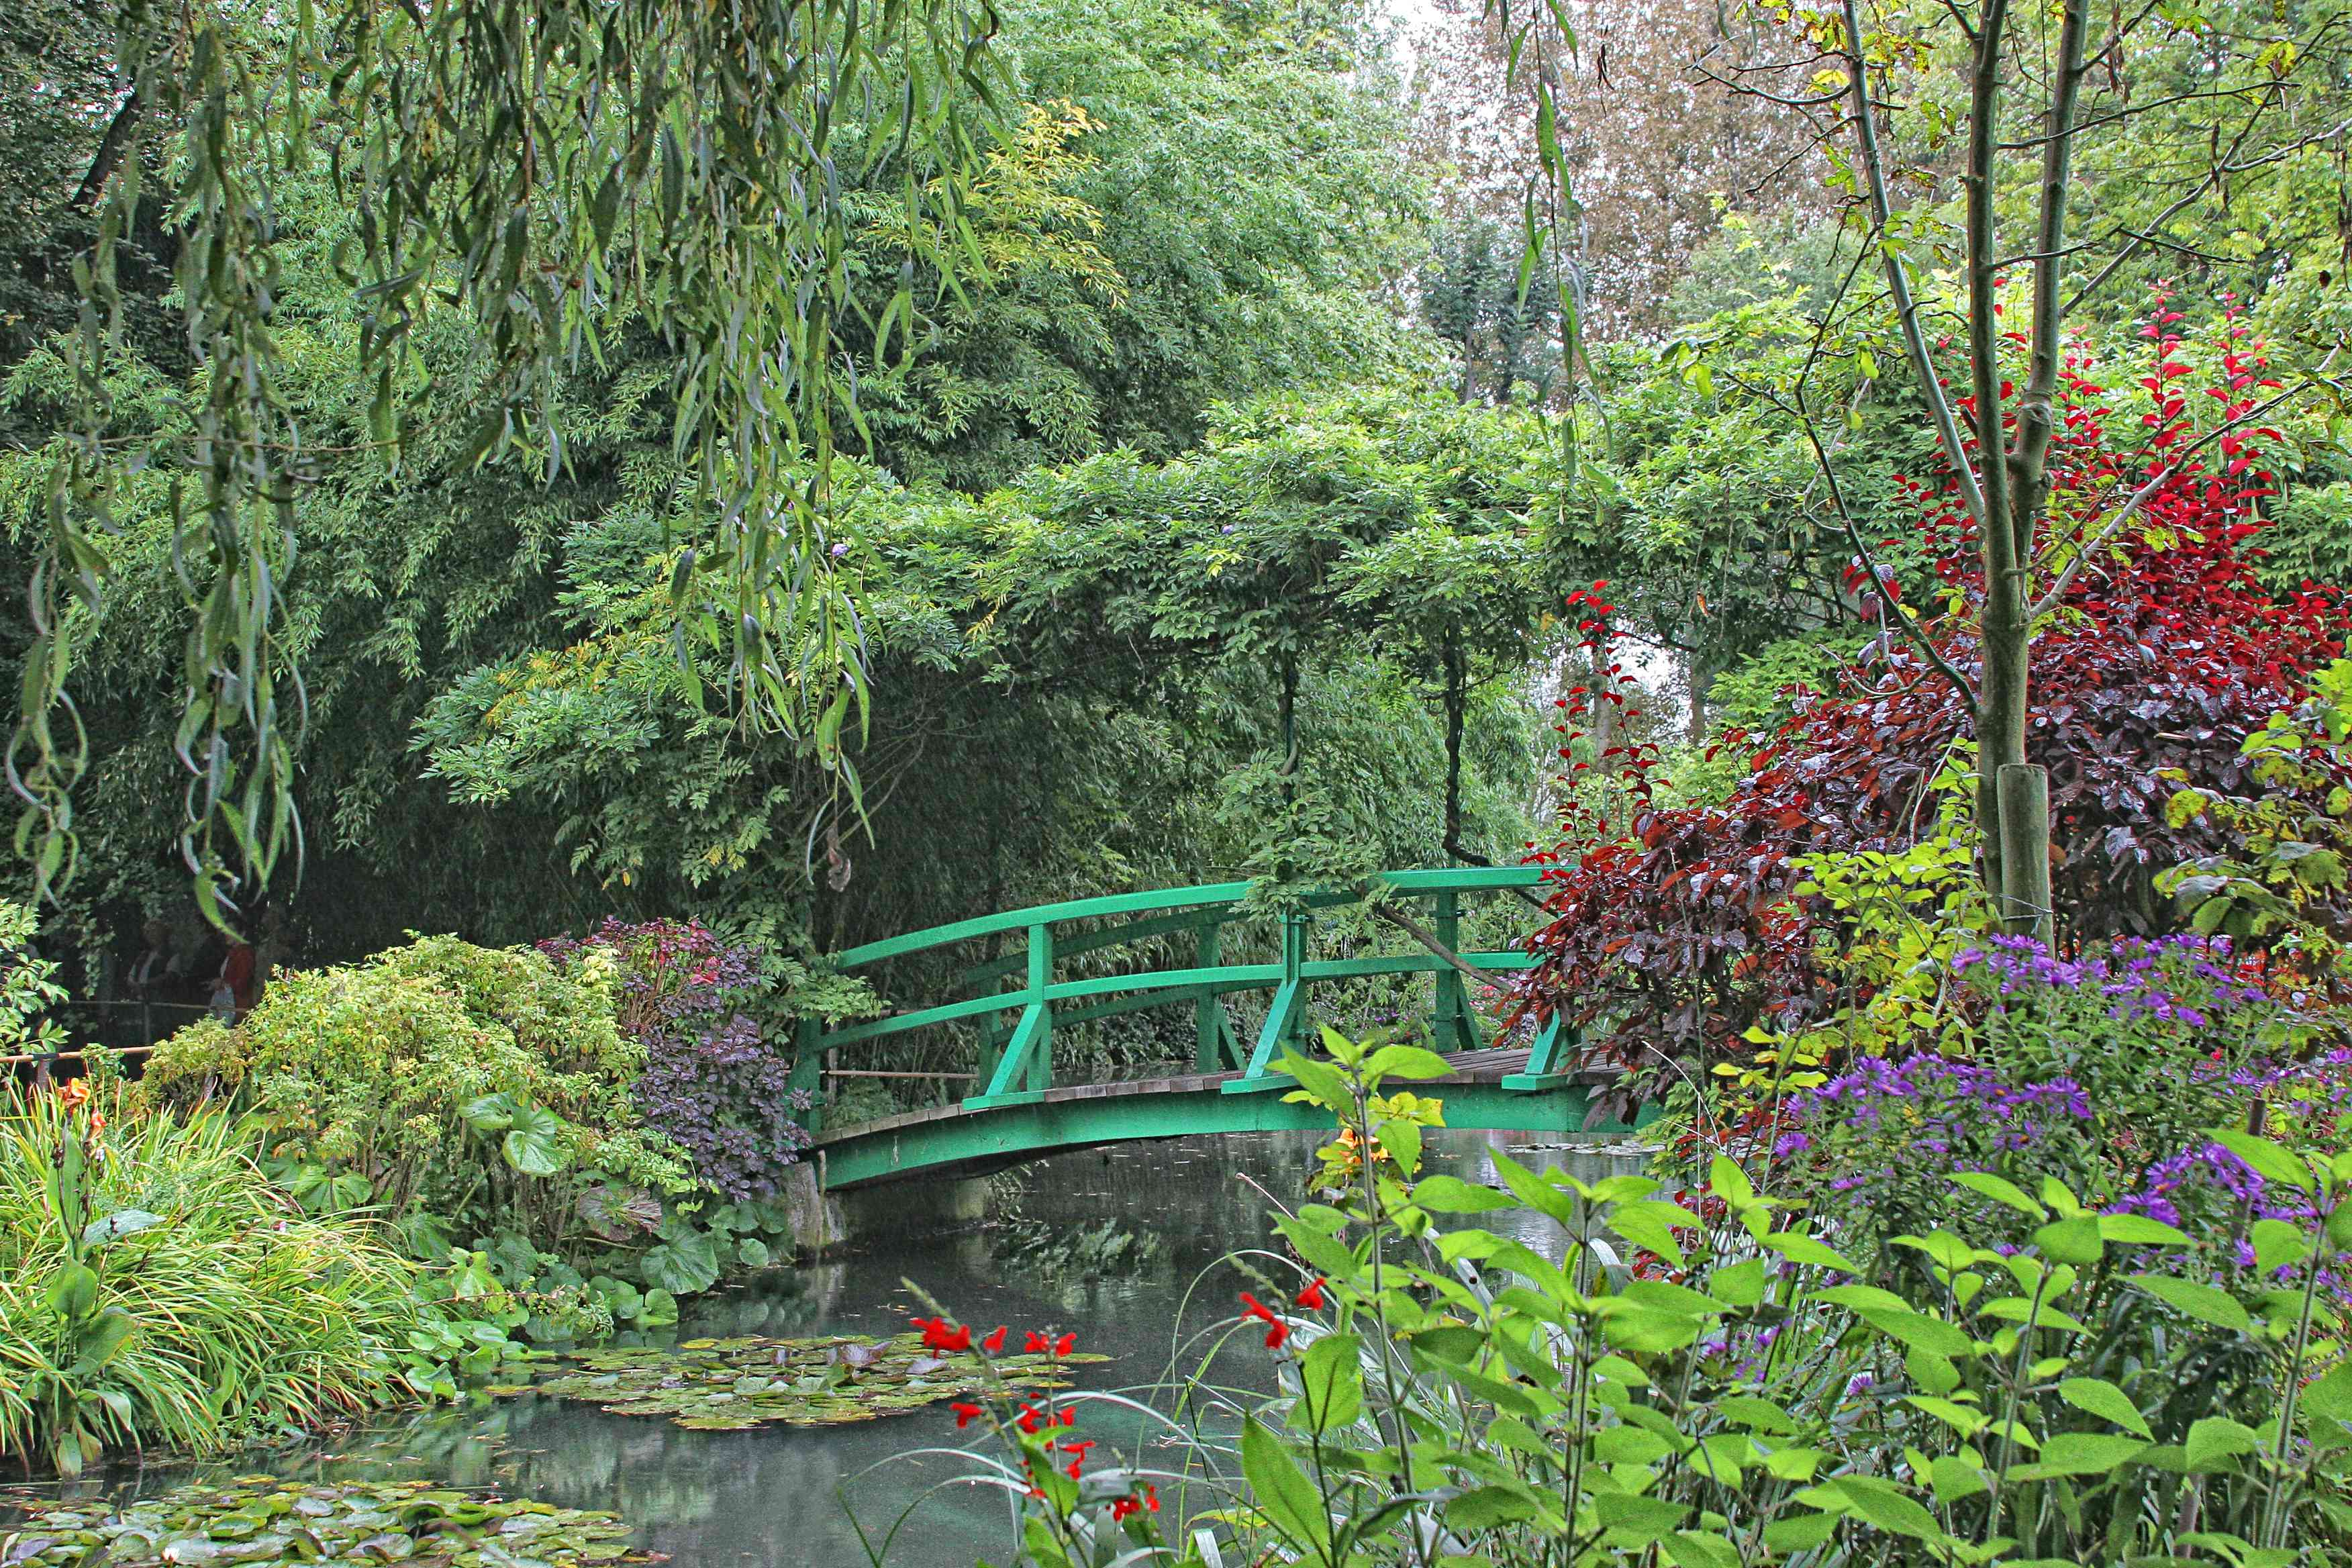 green bridge over the lily pond at Claude Monet's garden at Giverney